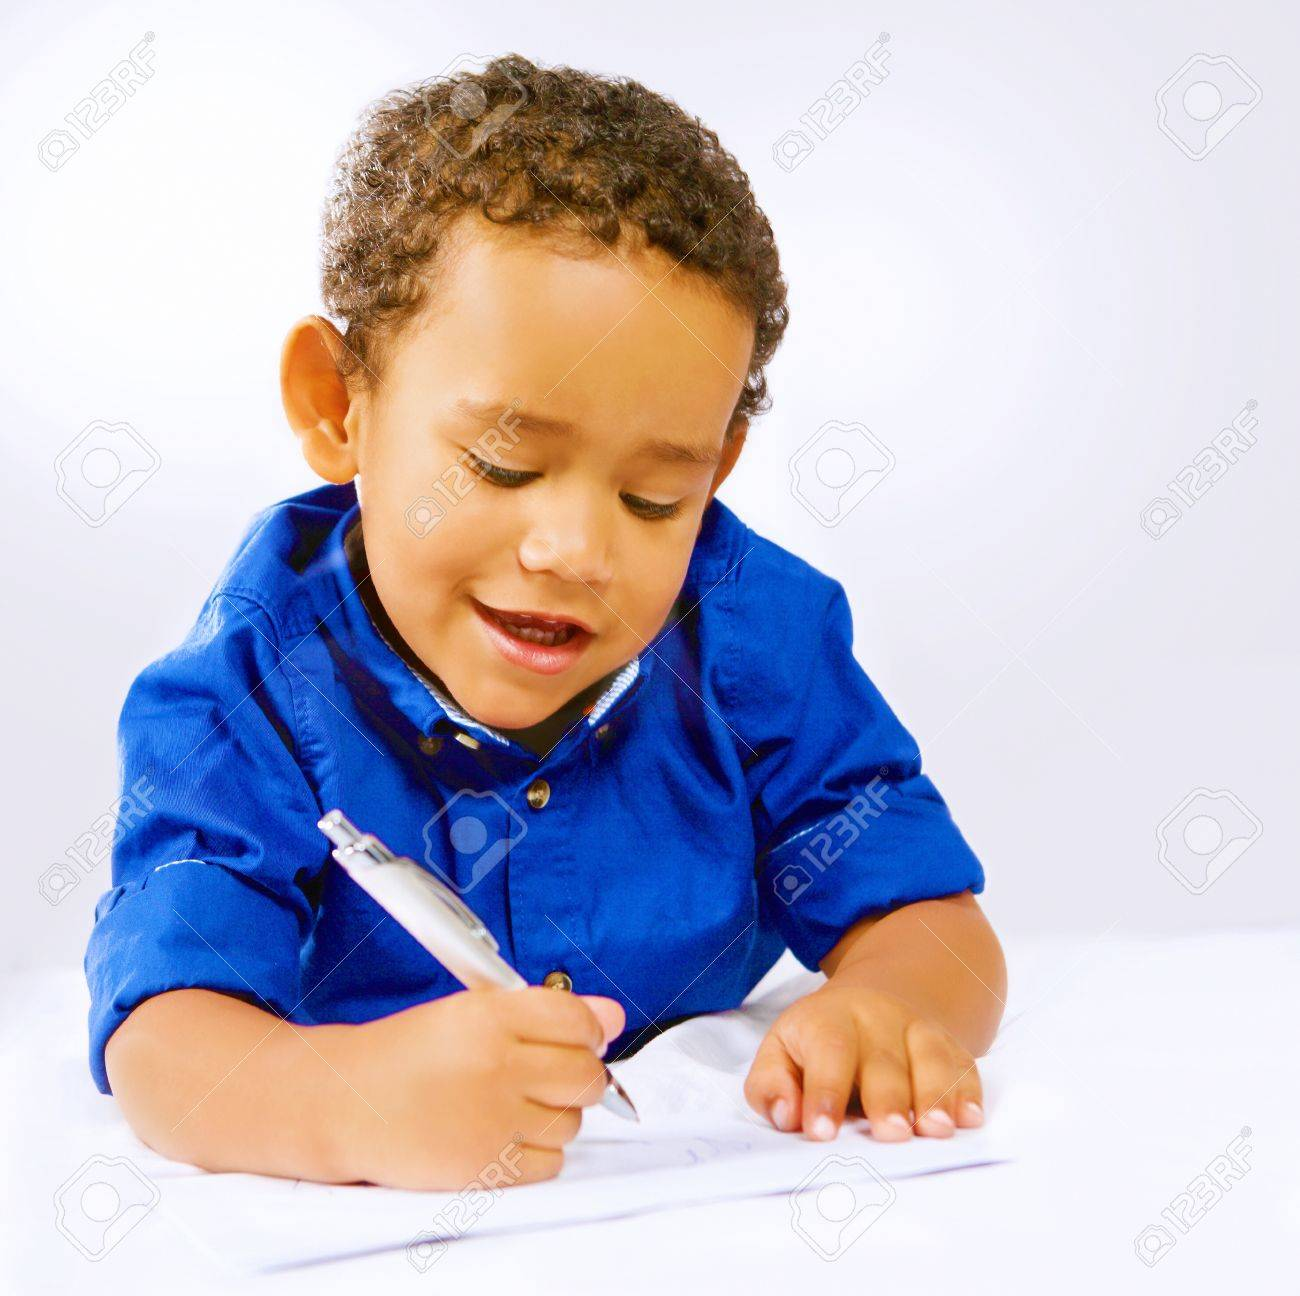 cute kid writing or doodling with pen on paper stock photo, picture